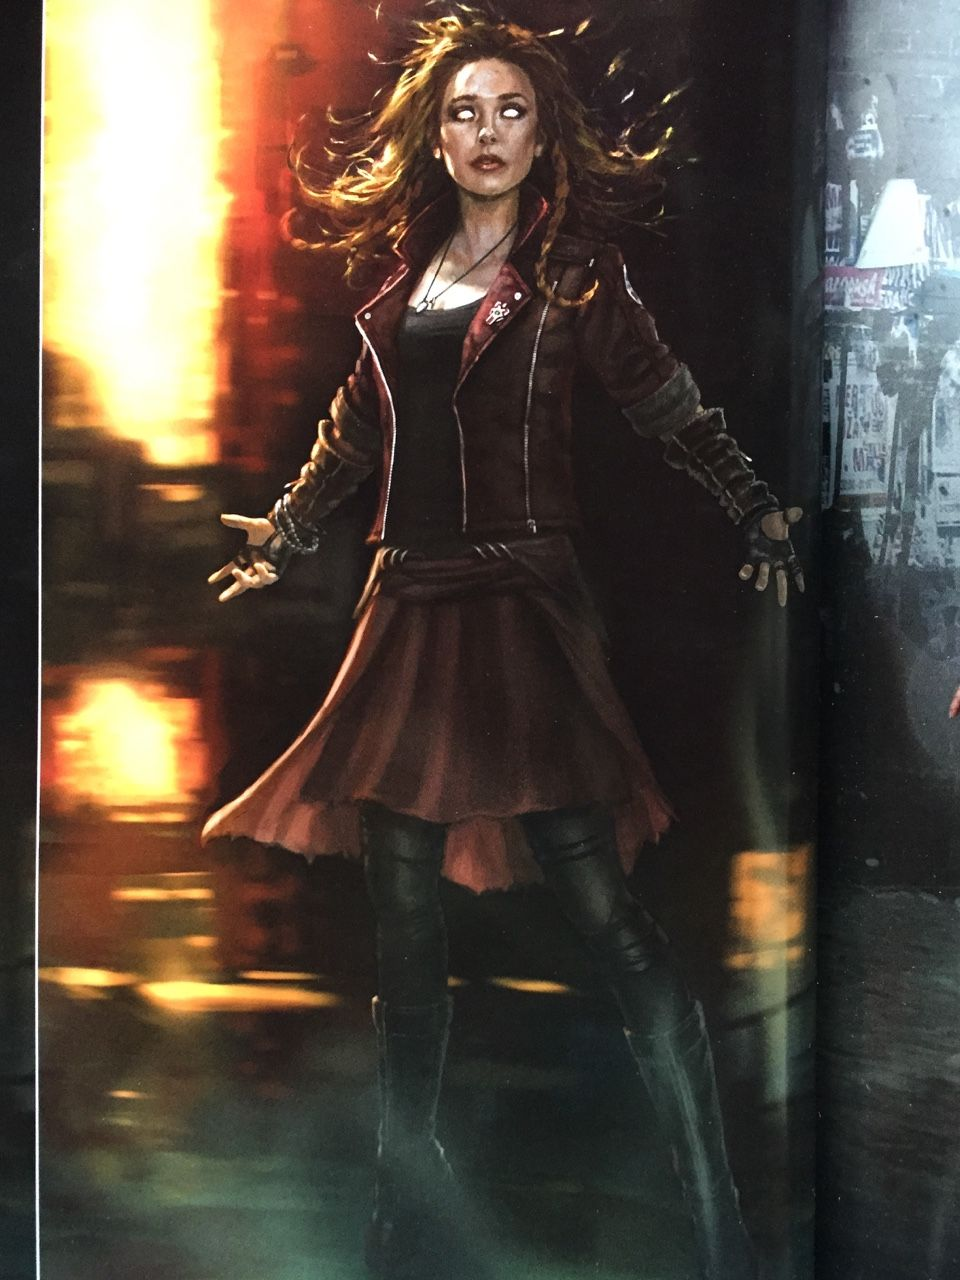 wanda maximoffscarlet witch avengers age of ultron